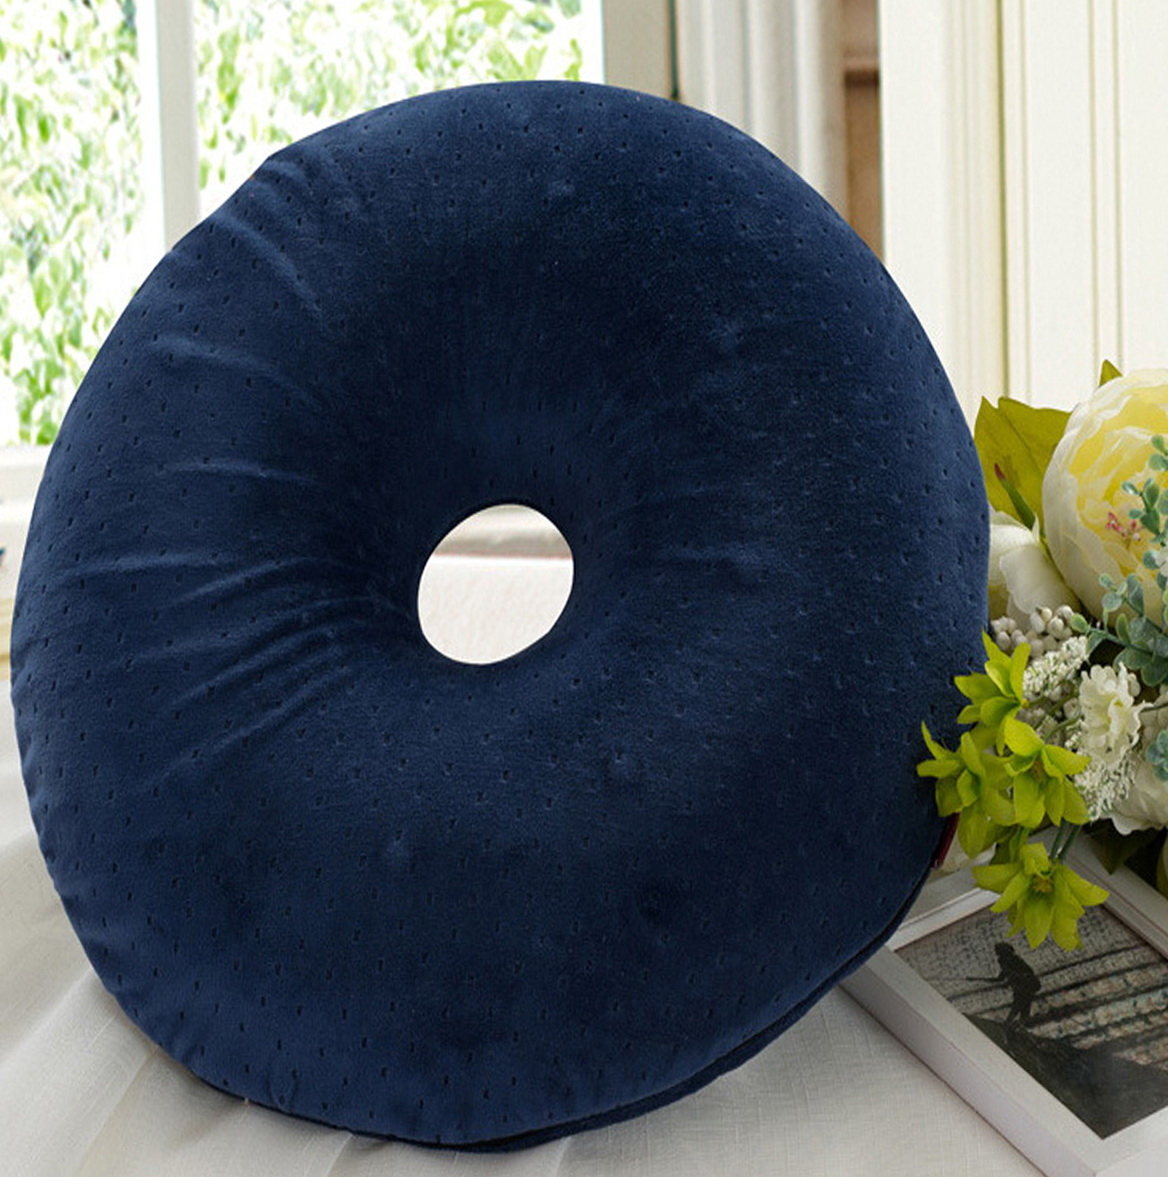 Donut Seat Cushion Prostate